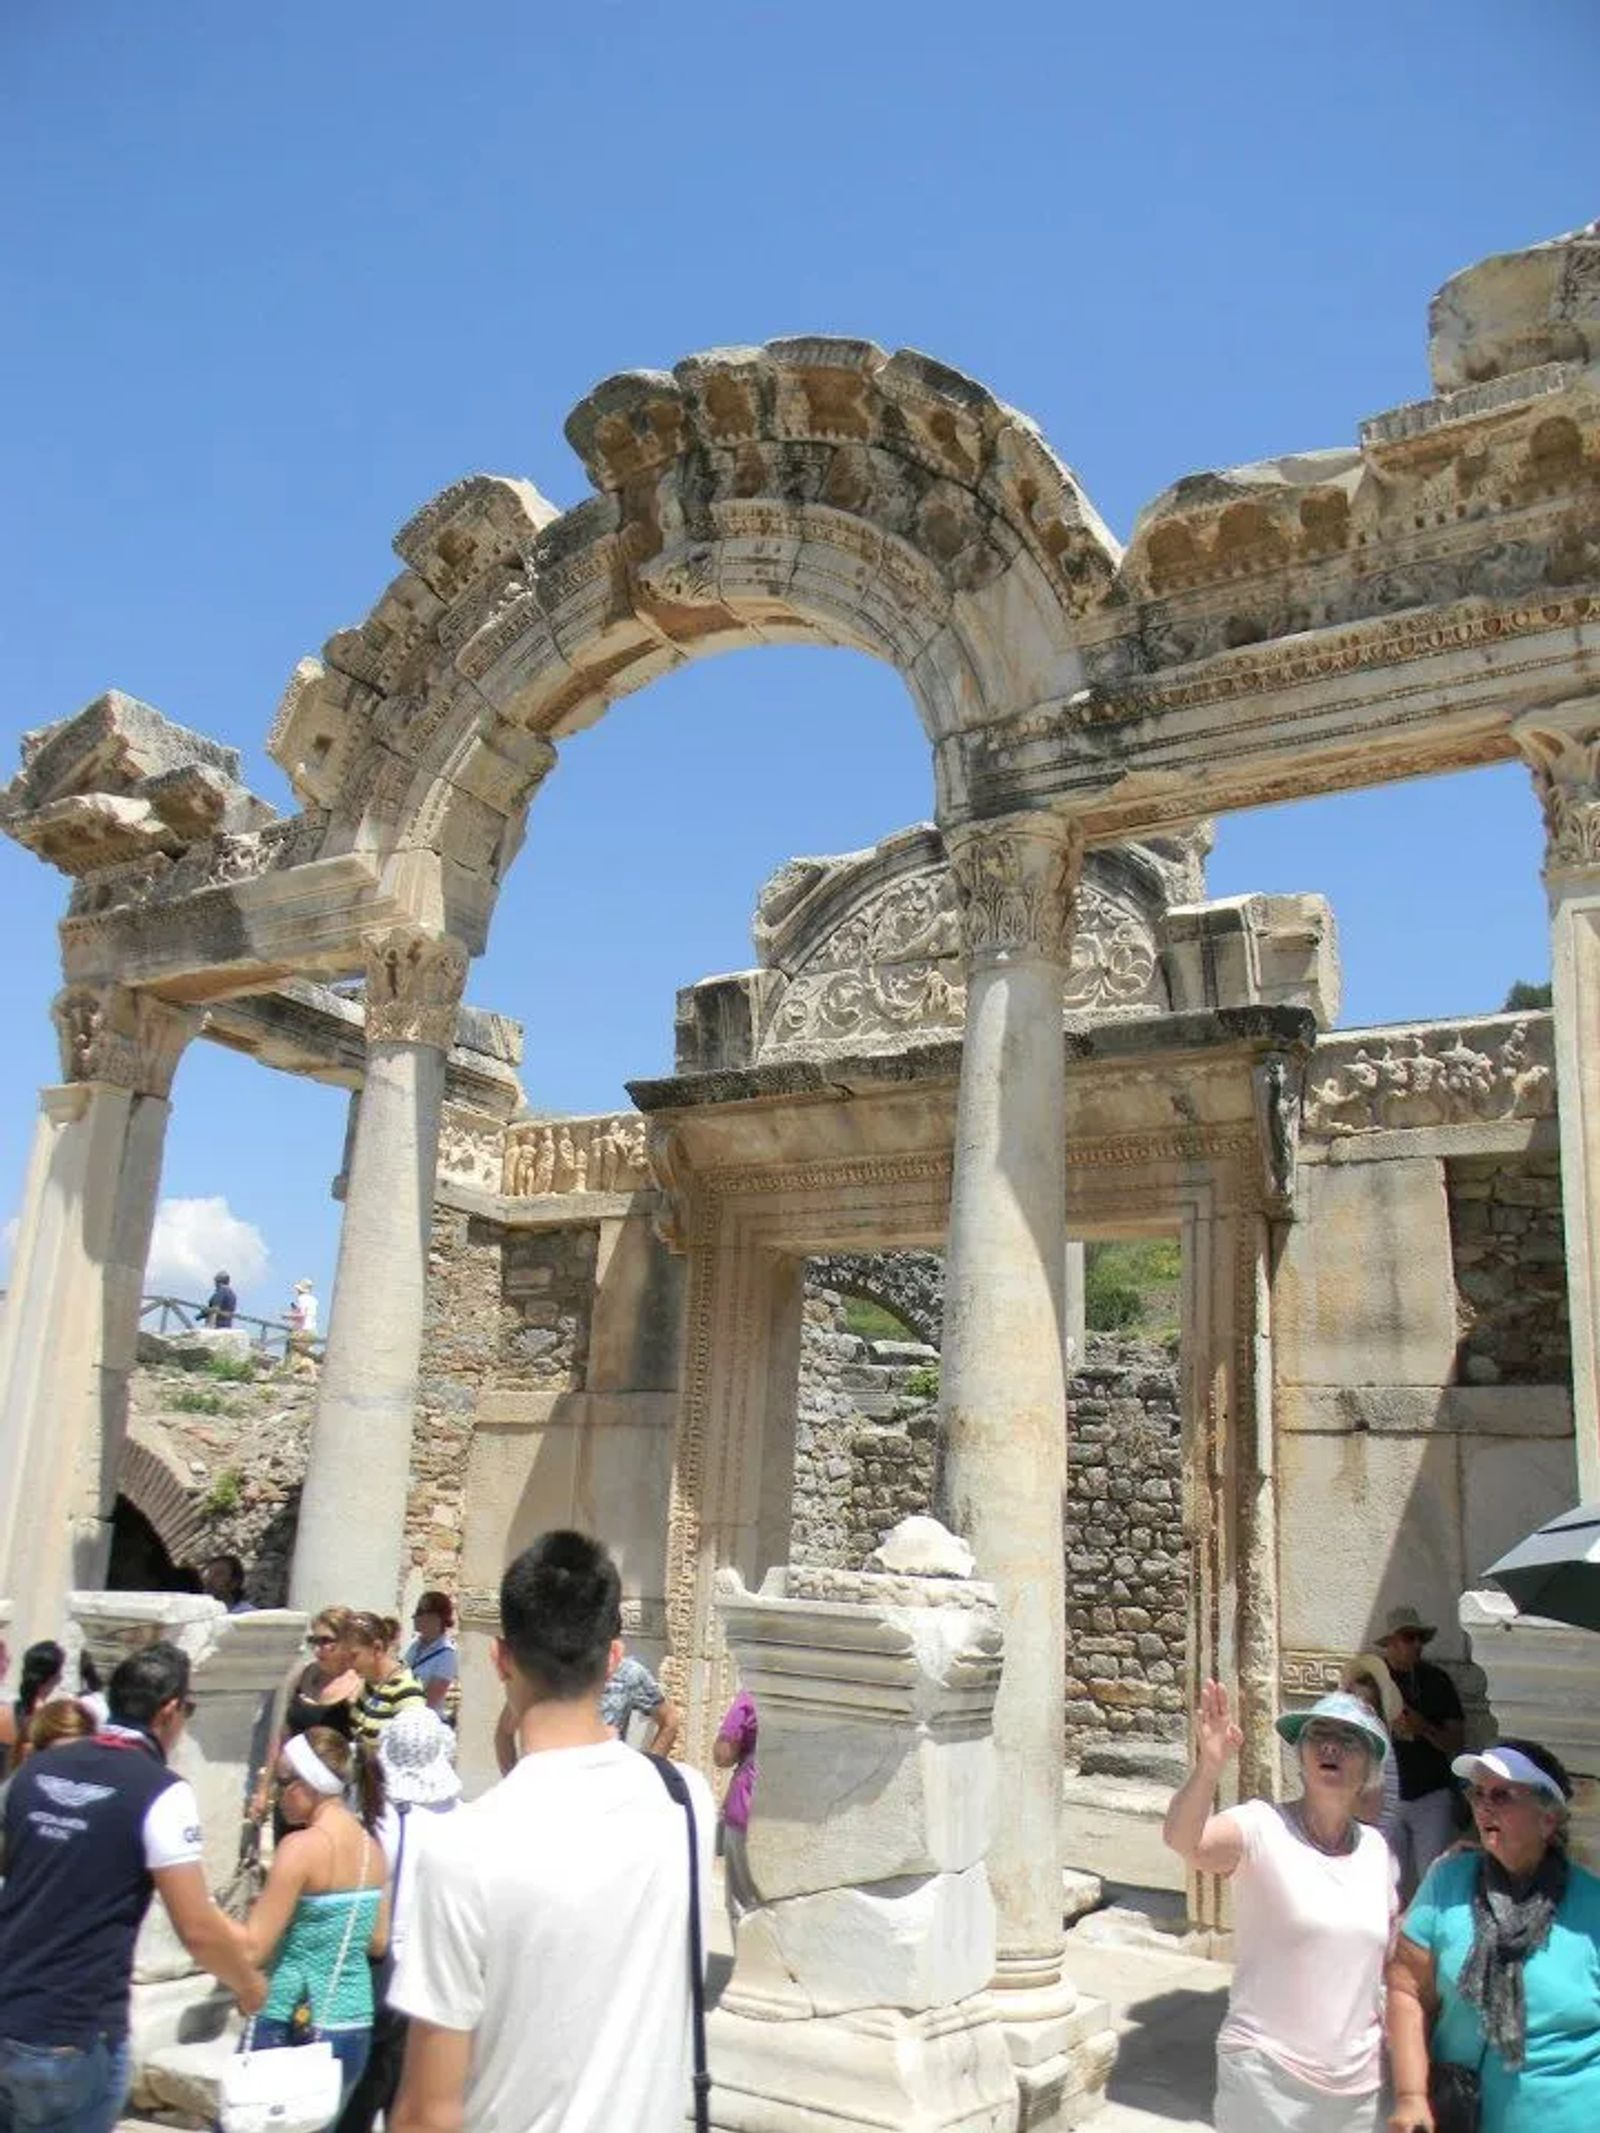 Visit Ephesus on a shore excursion - Culture Trekking - #Ephesus #EphesusTurkey #Ephesusshoreexcursion